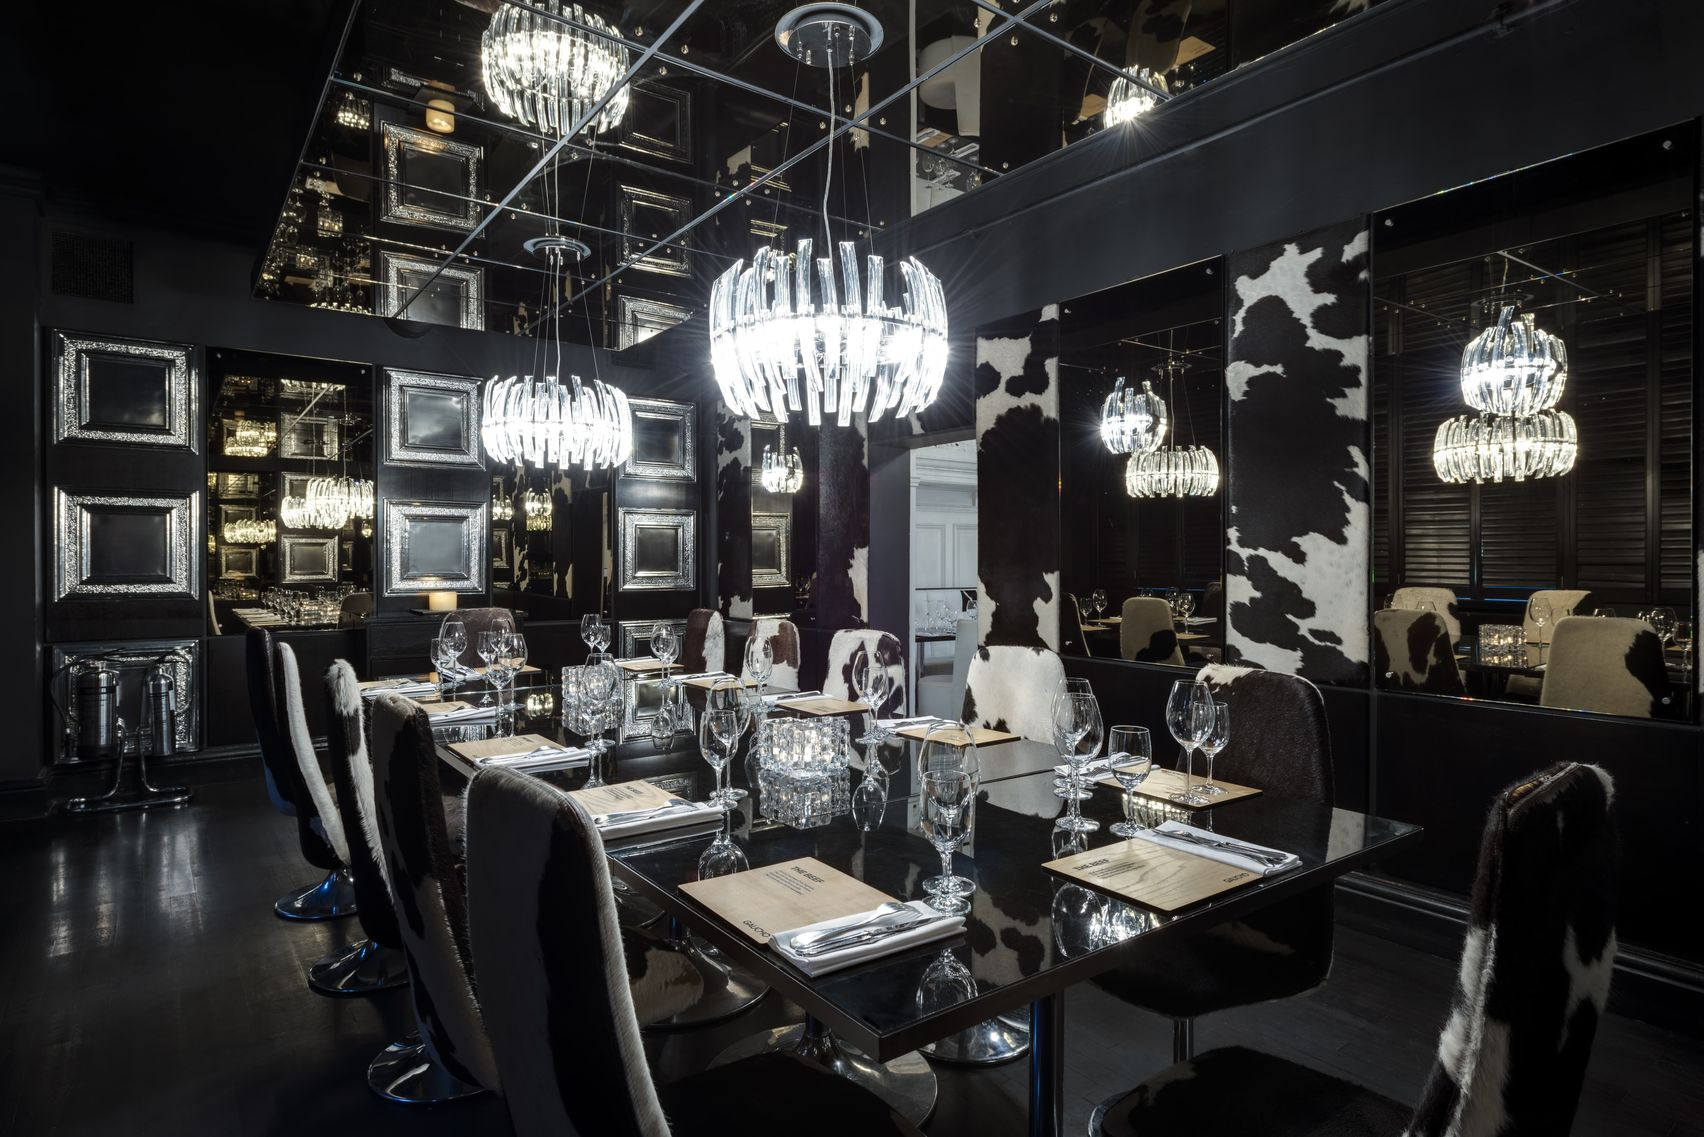 A private dining room in Manchester with cow print decor